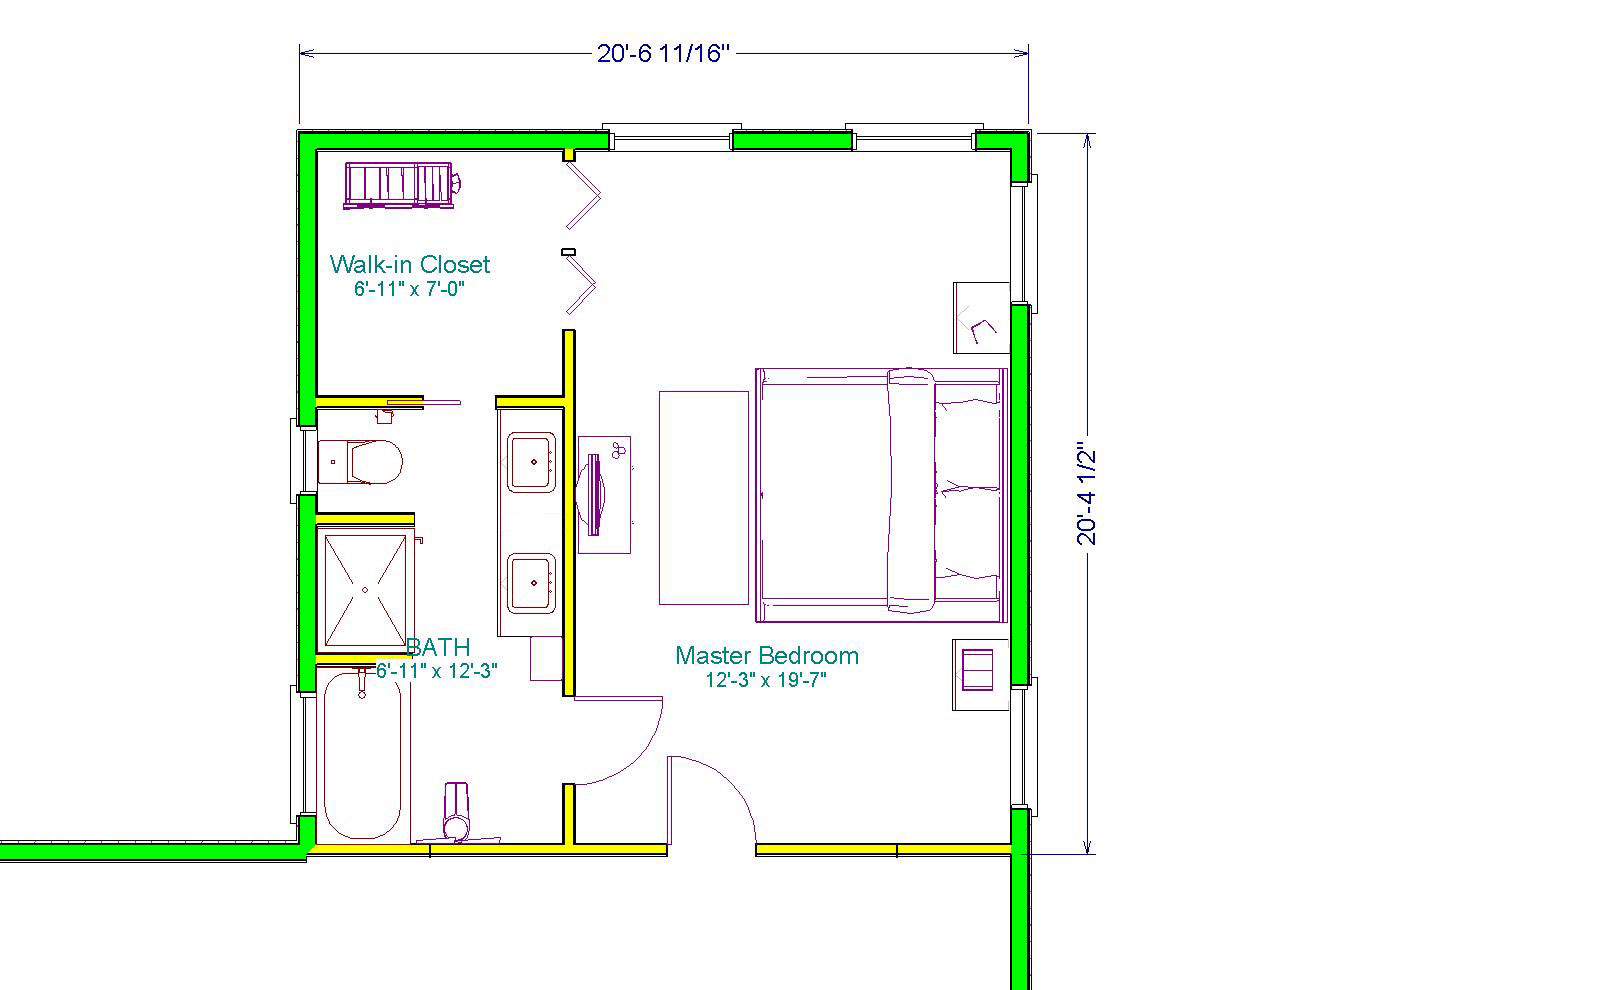 Master Bedroom Plans the executive master suite 400sq-ft - extensions - simply additions